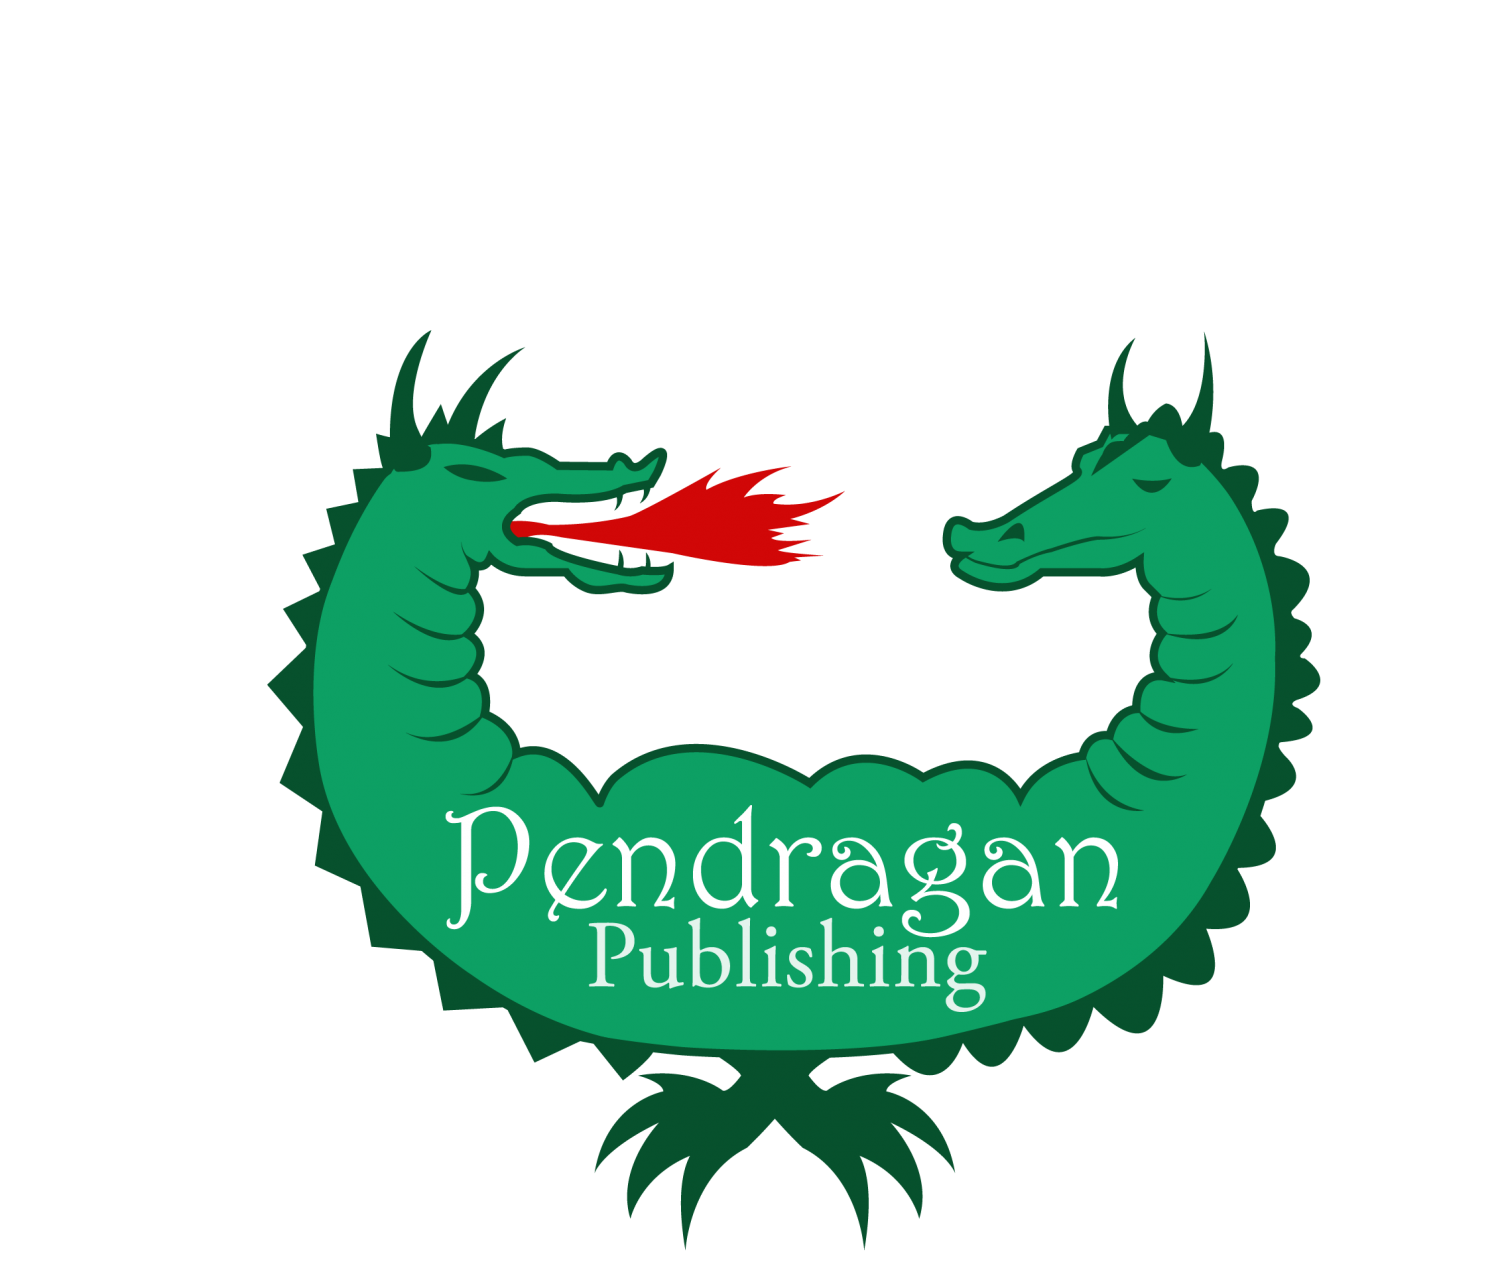 Pendragan Publishing